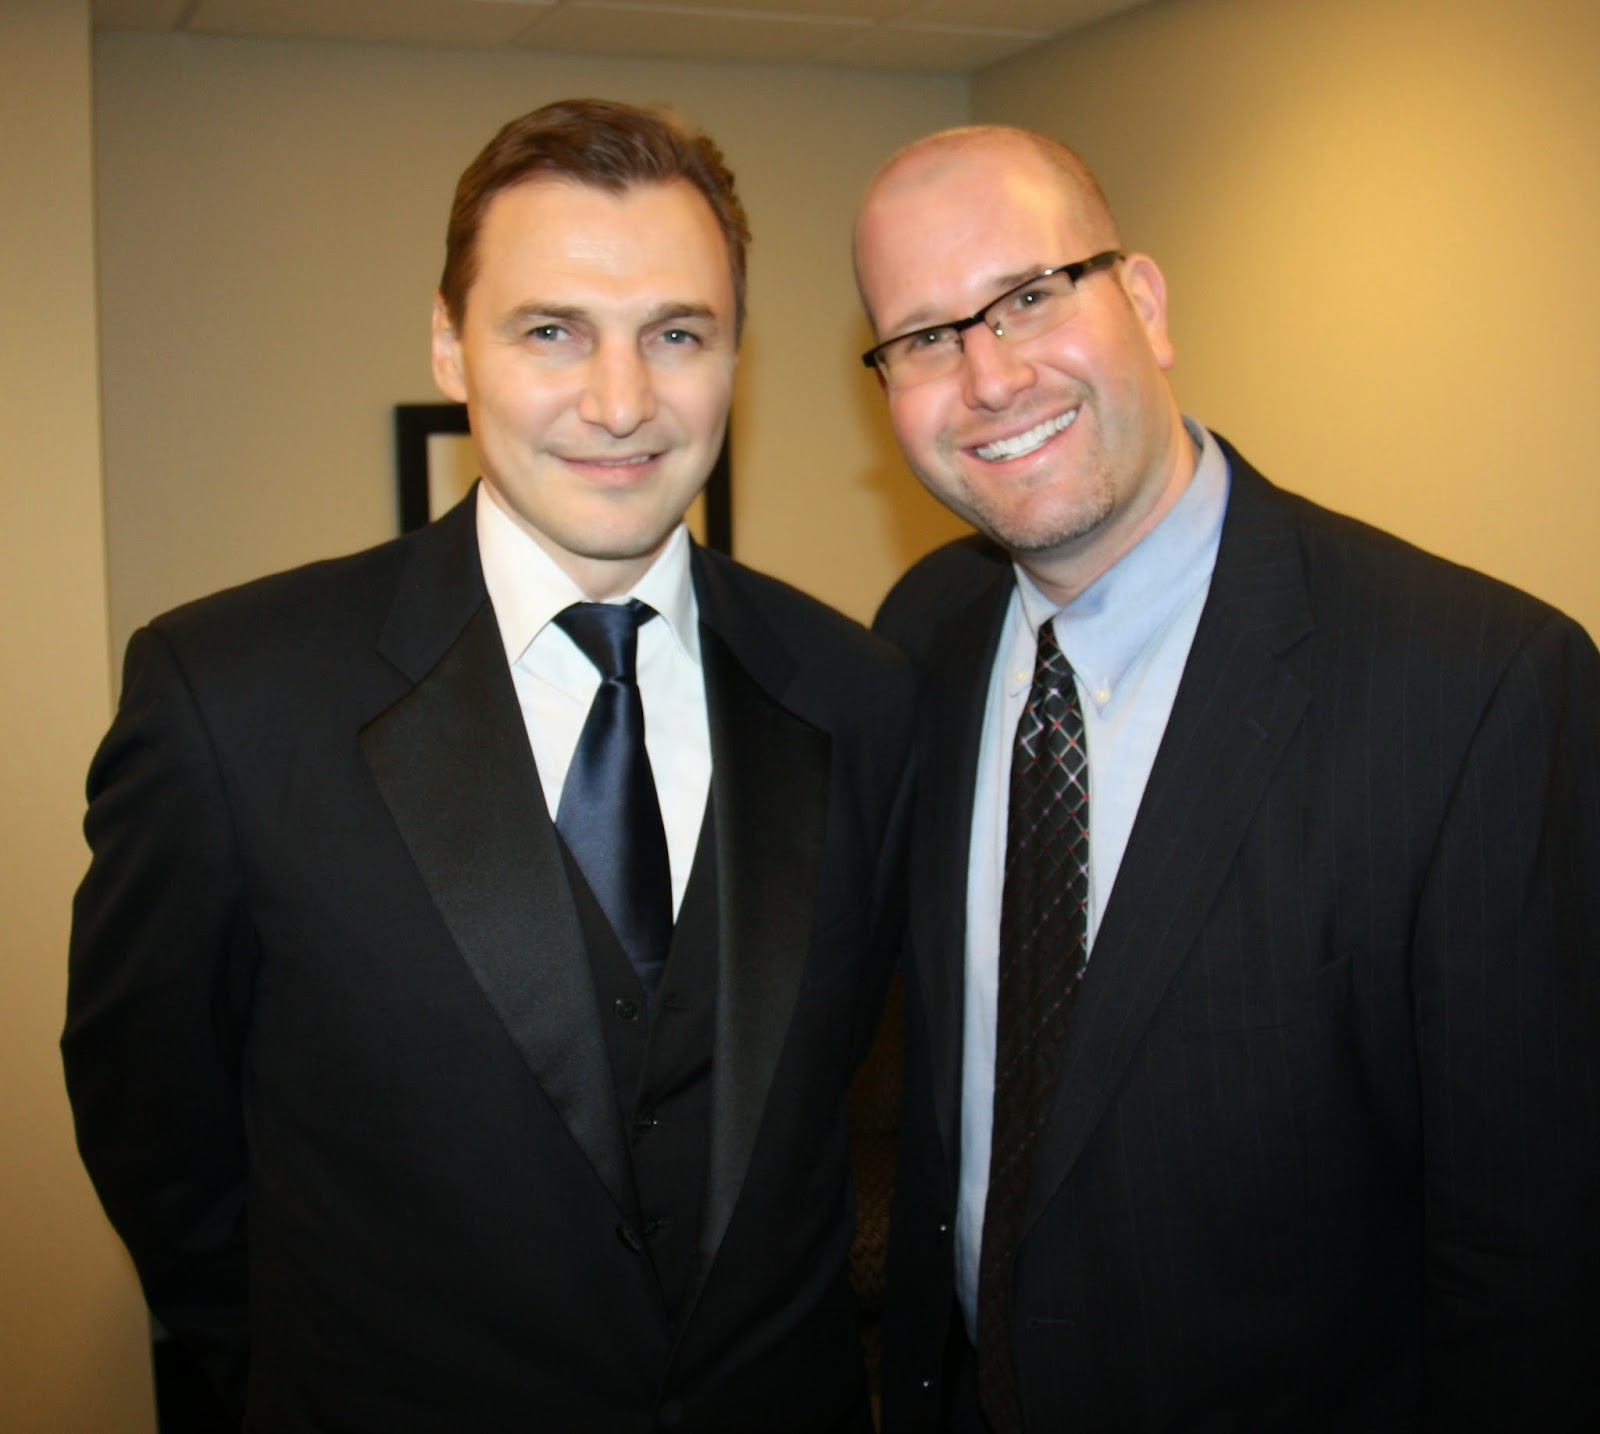 Rabbi Jason Miller and Detroit Red Wings Hall of Famer Sergei Federov